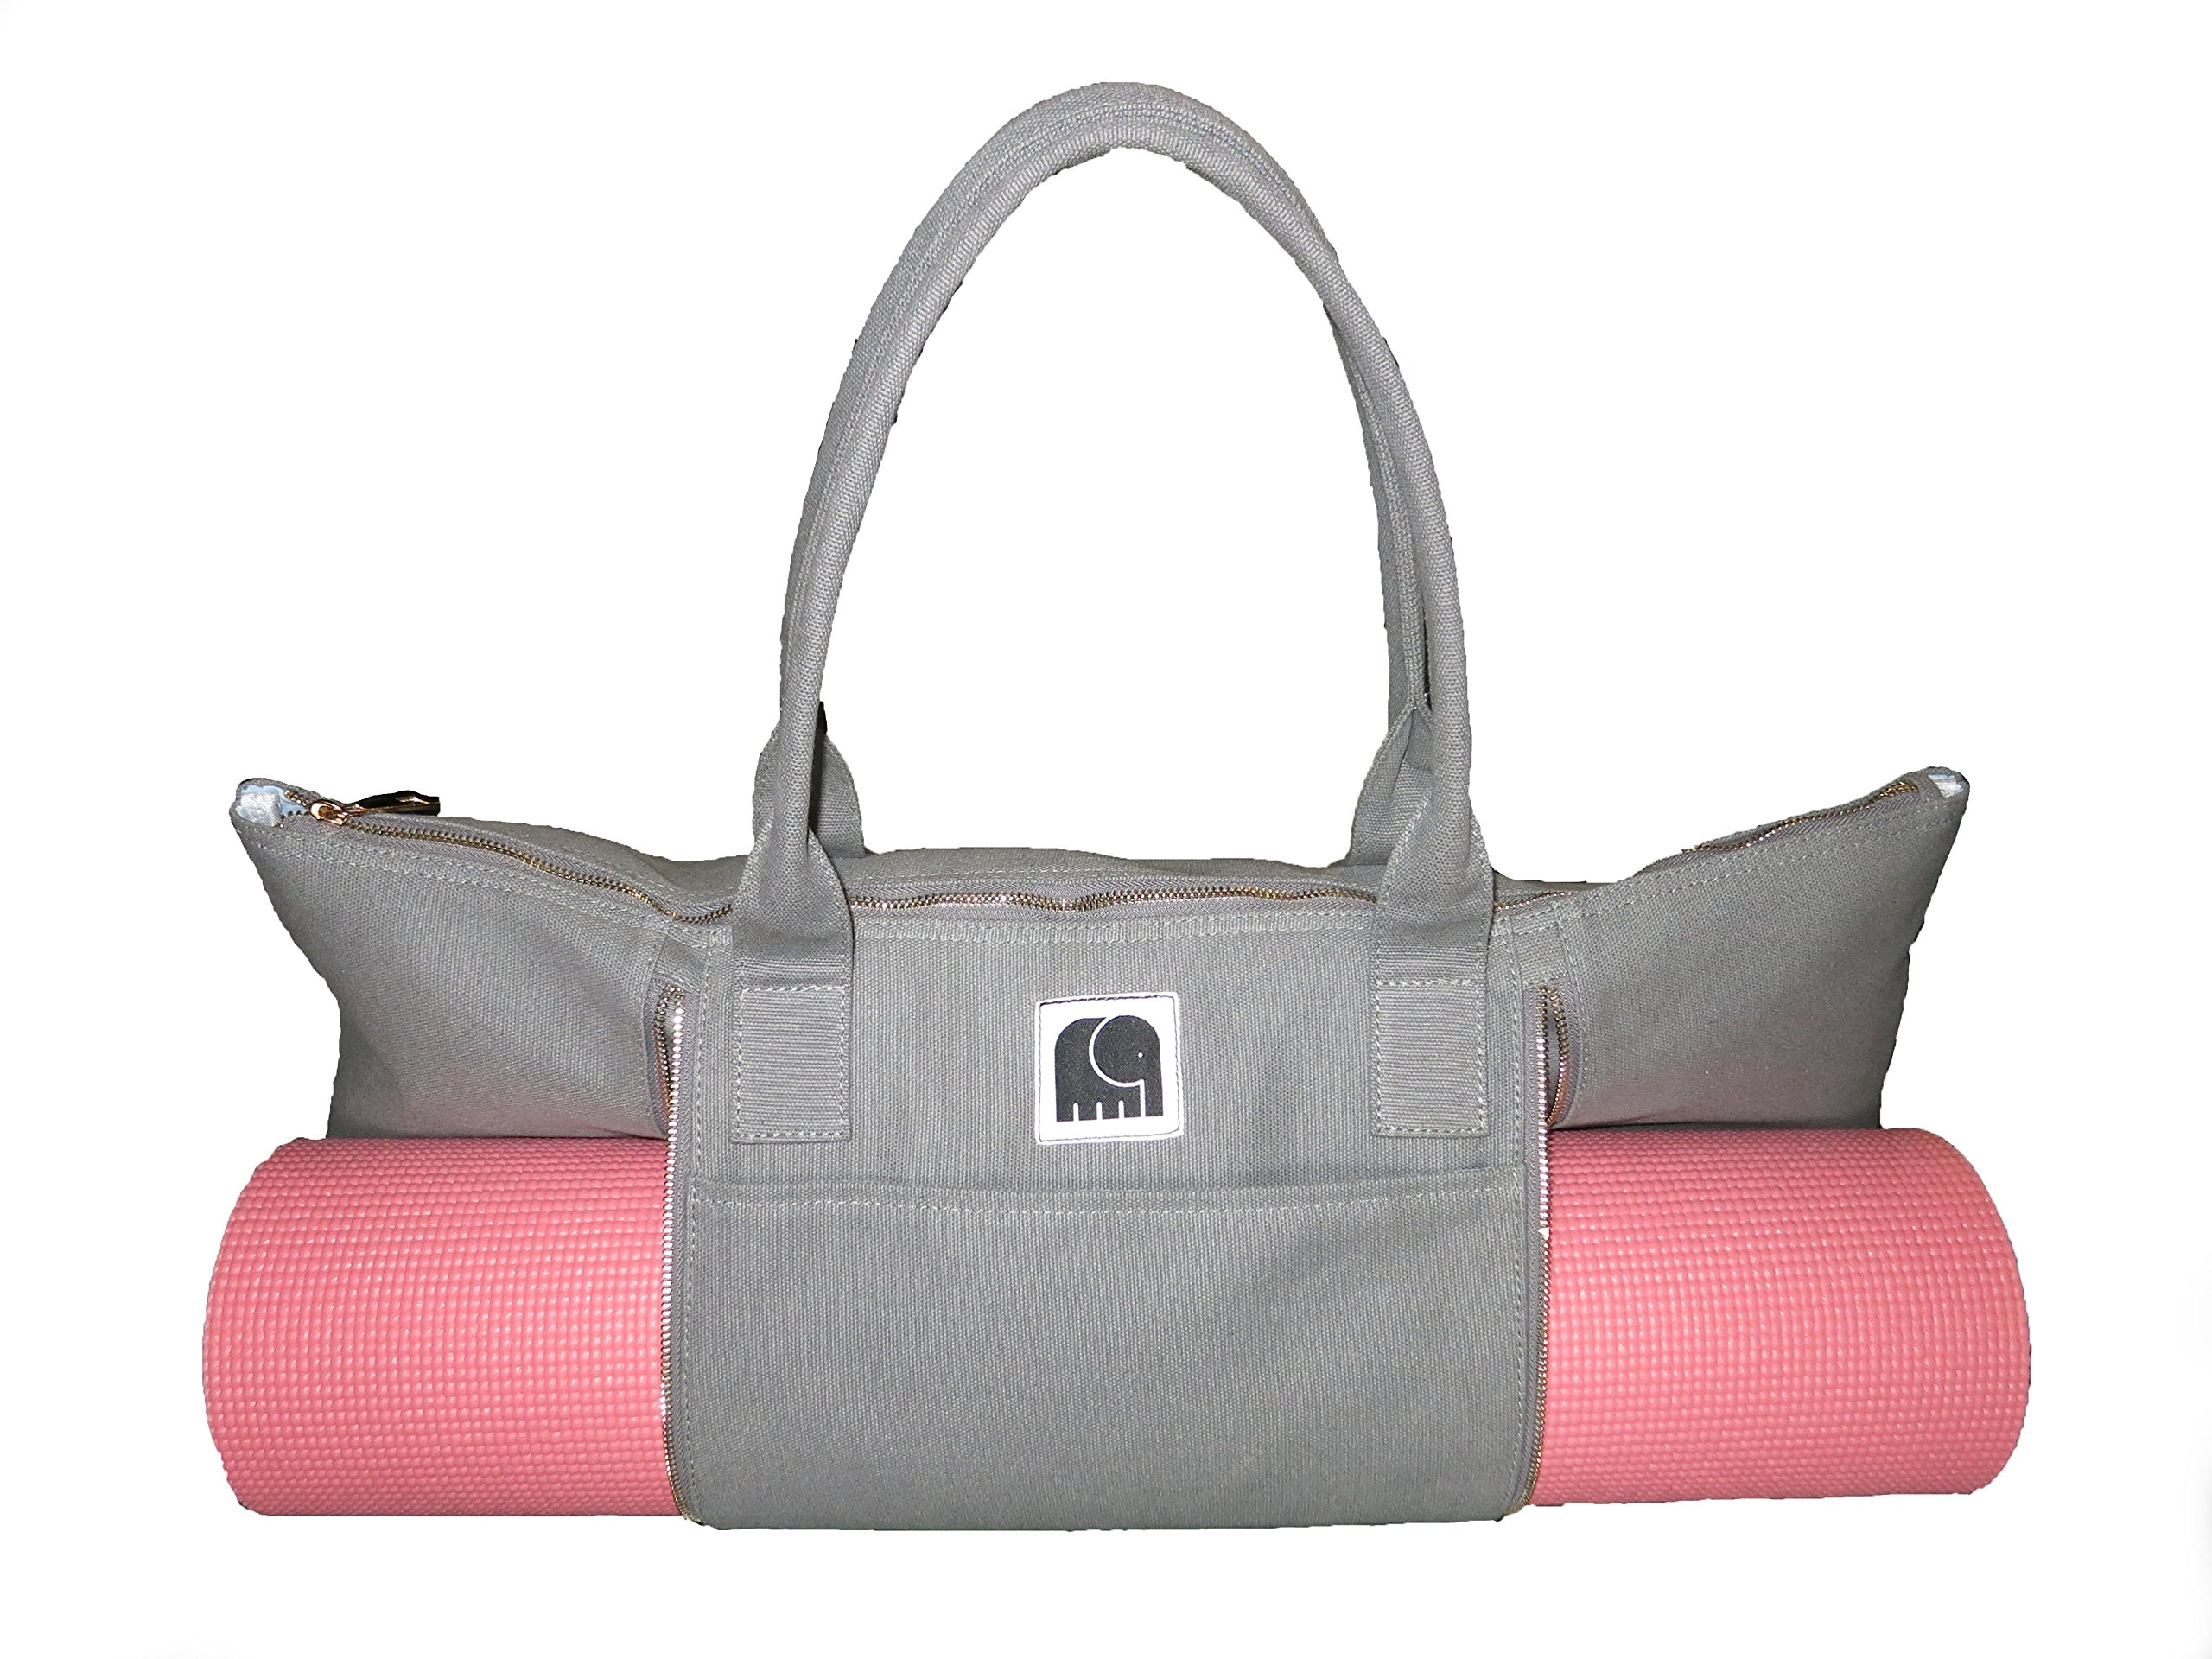 Yoga Mat Bag by Mantra Yoga | Gym Tote Bag for Yoga | Large Yoga Tote Bag - Canvas | ''Mantra: Happiness for the Soul''